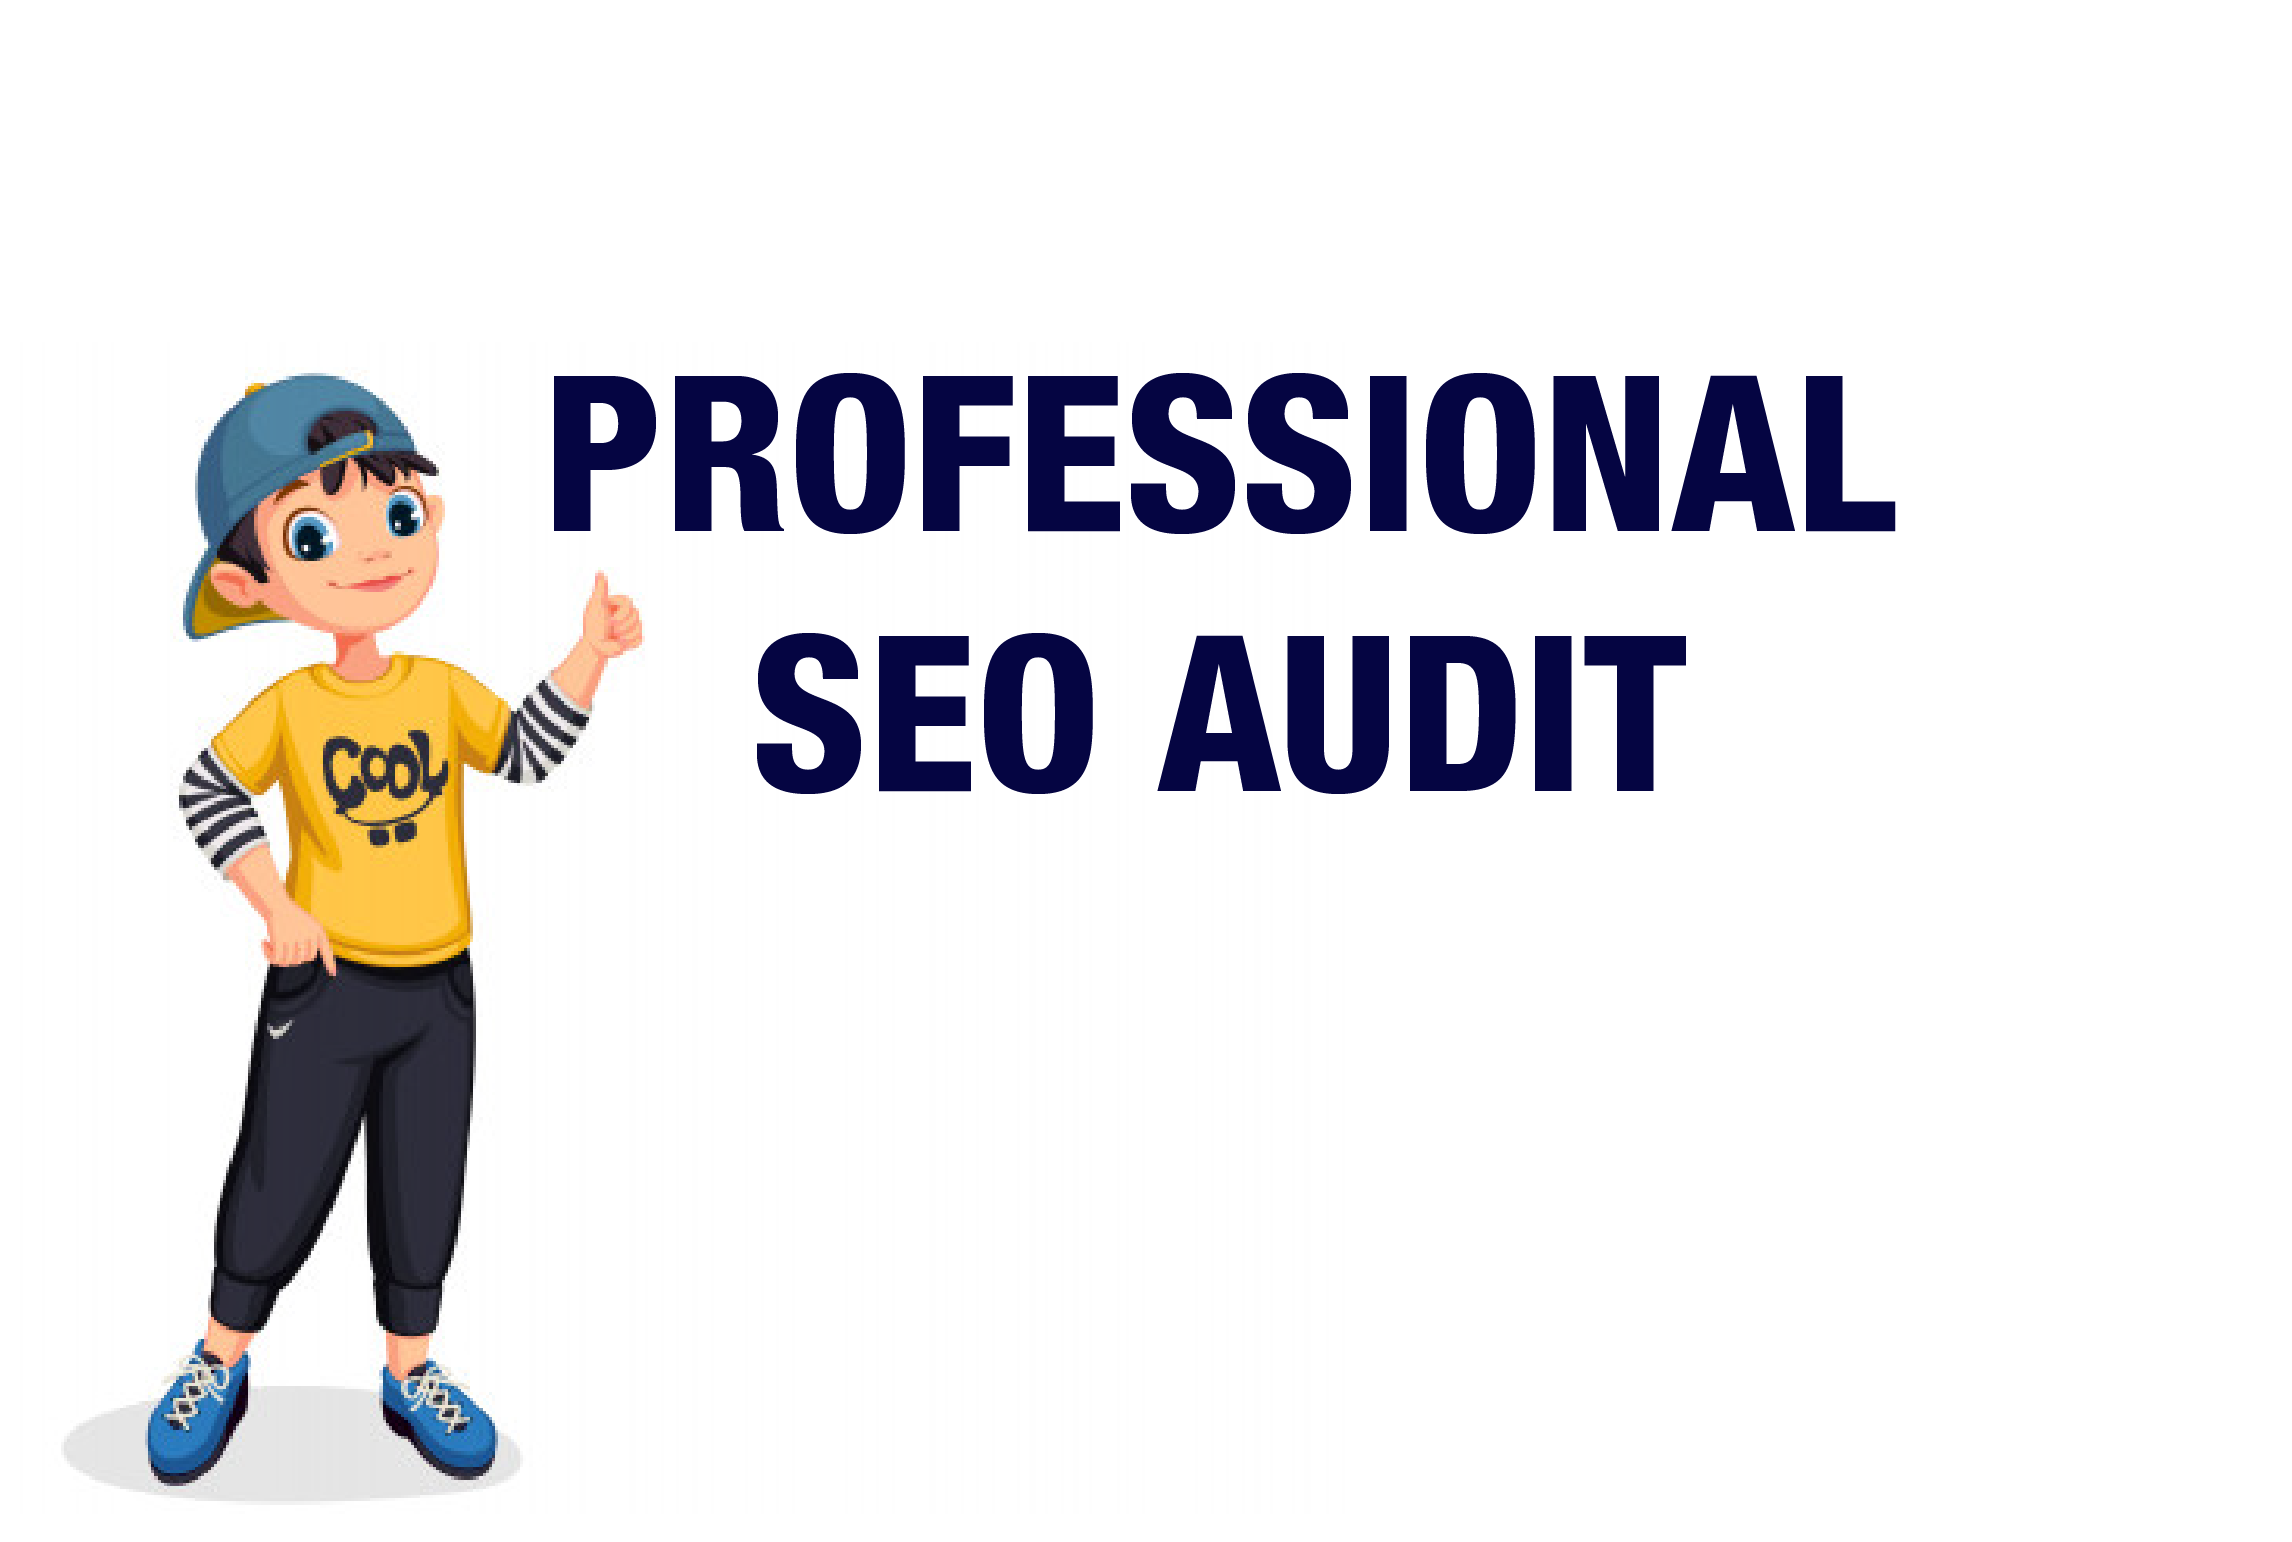 I will provide a professional SEO audit report and a competitor website analysis